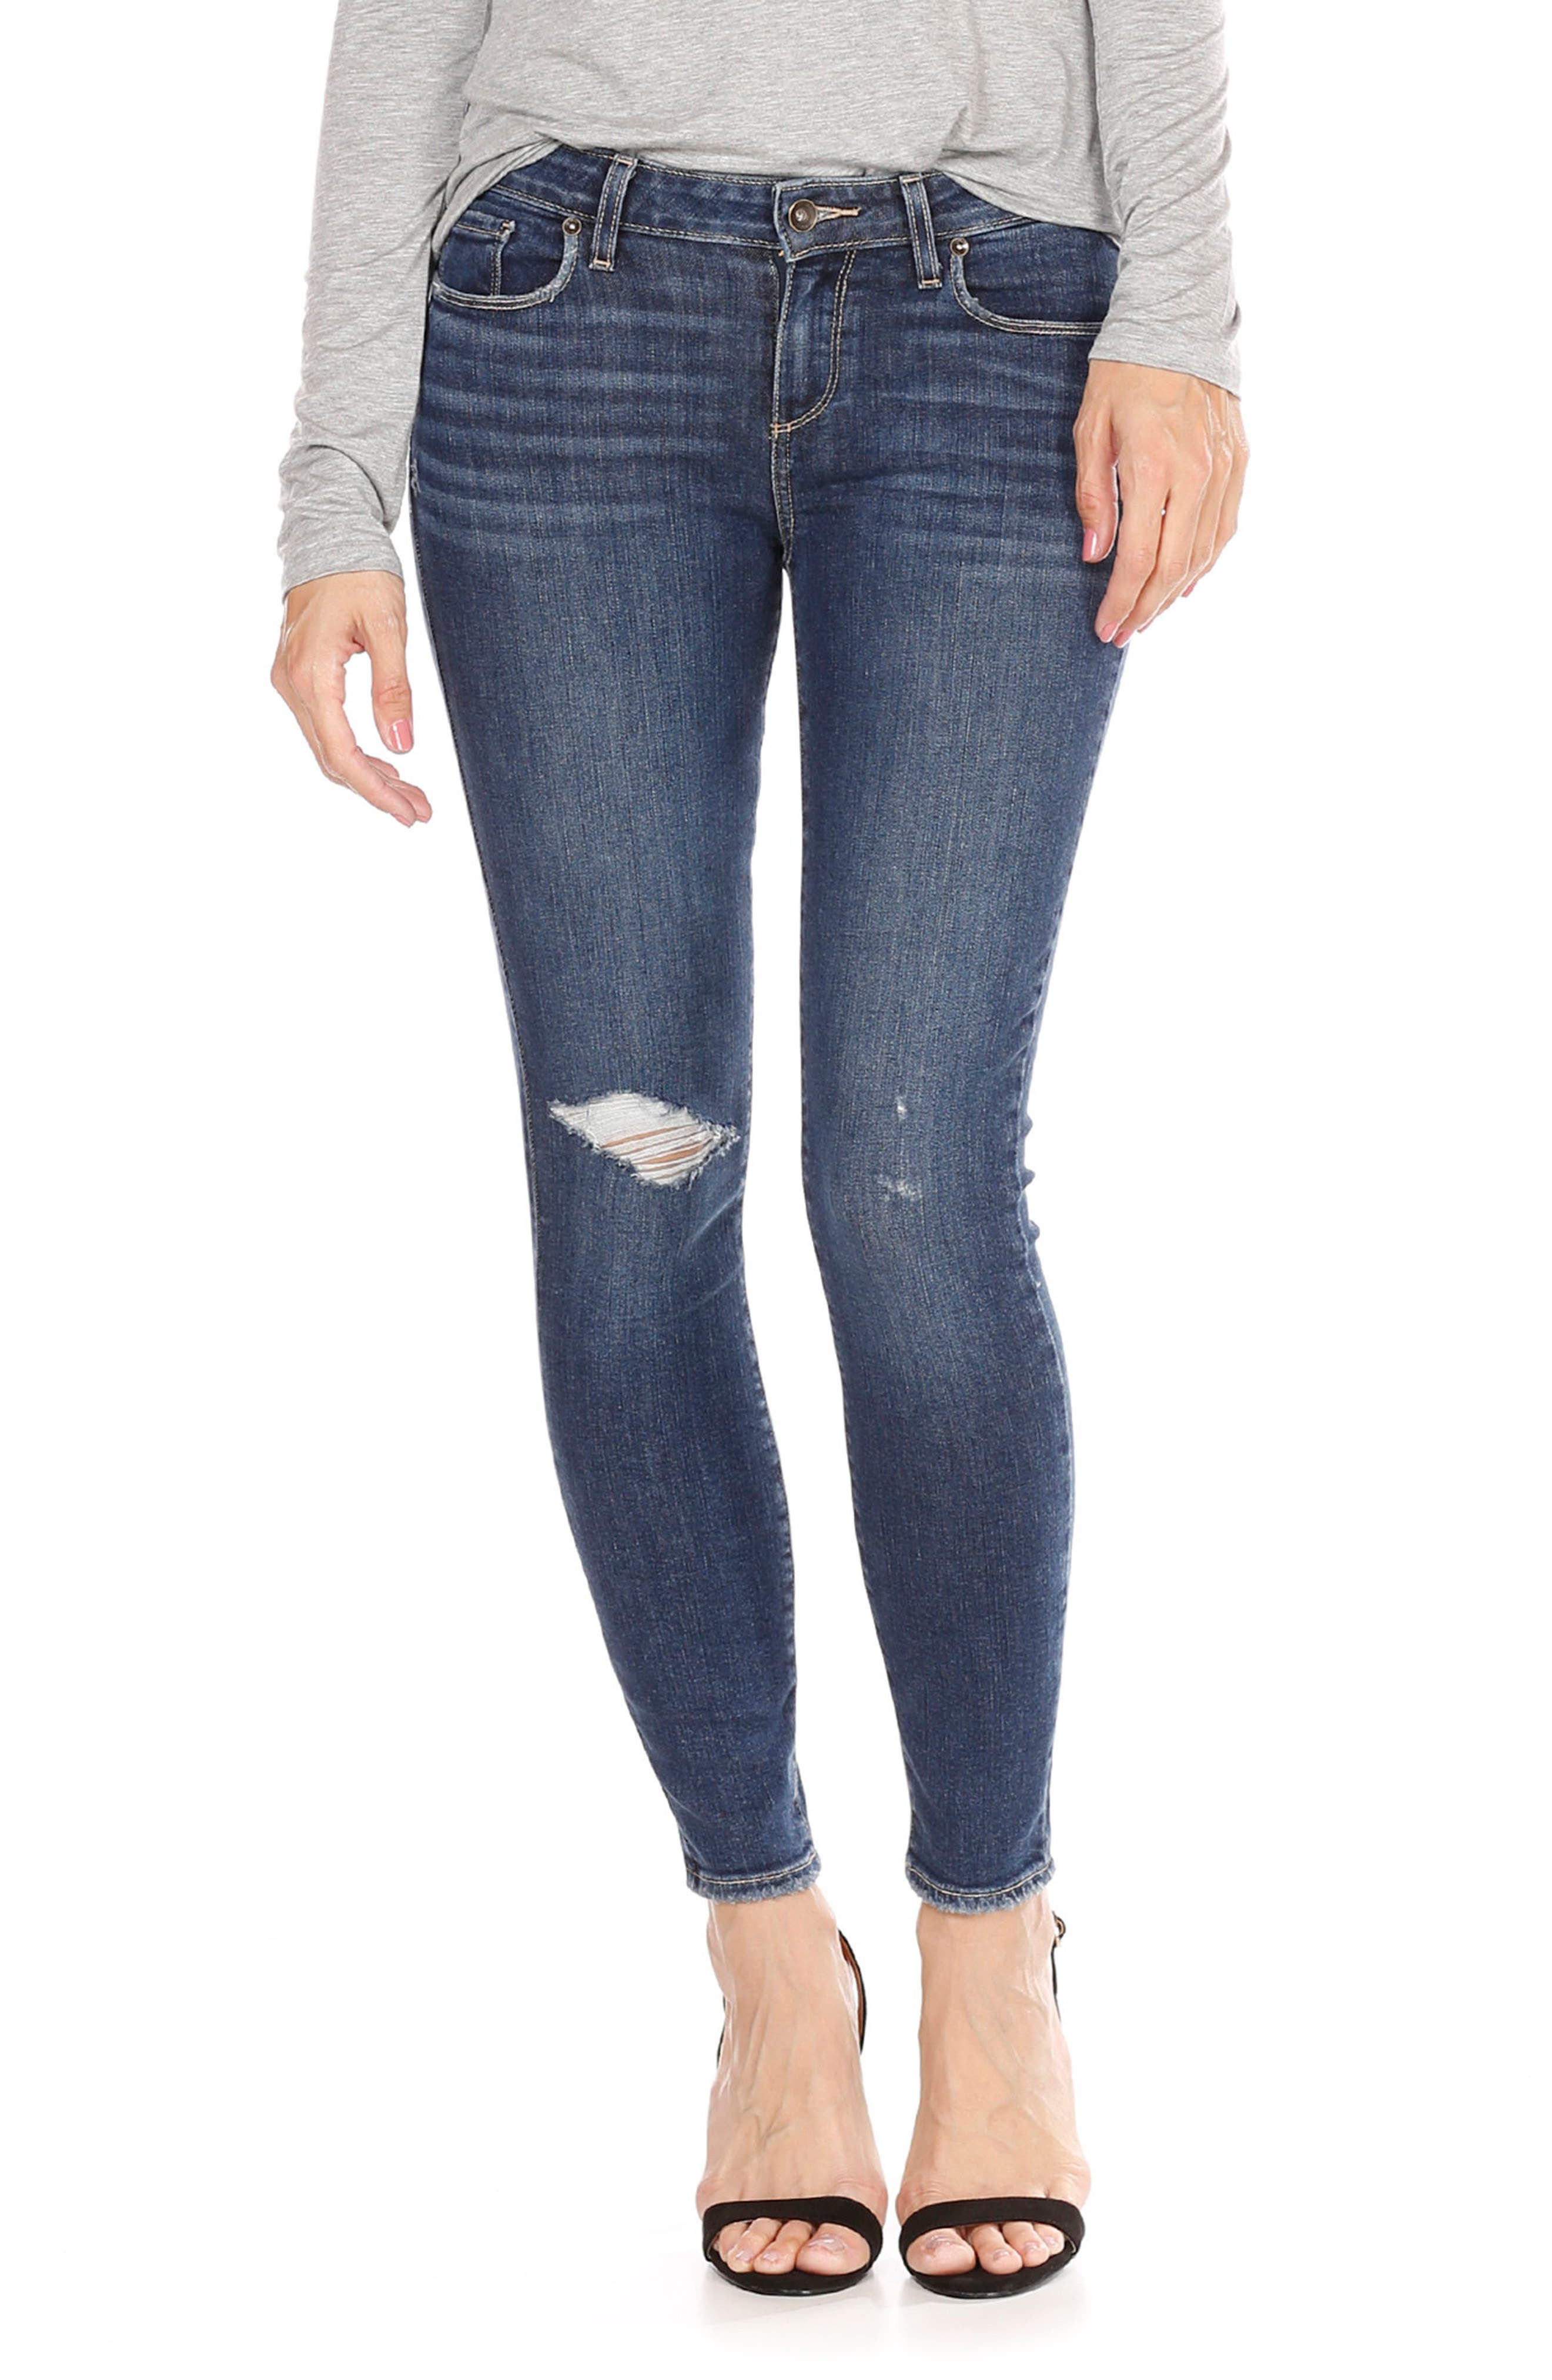 Verdugo Ripped Ankle Skinny Jeans,                         Main,                         color, 400